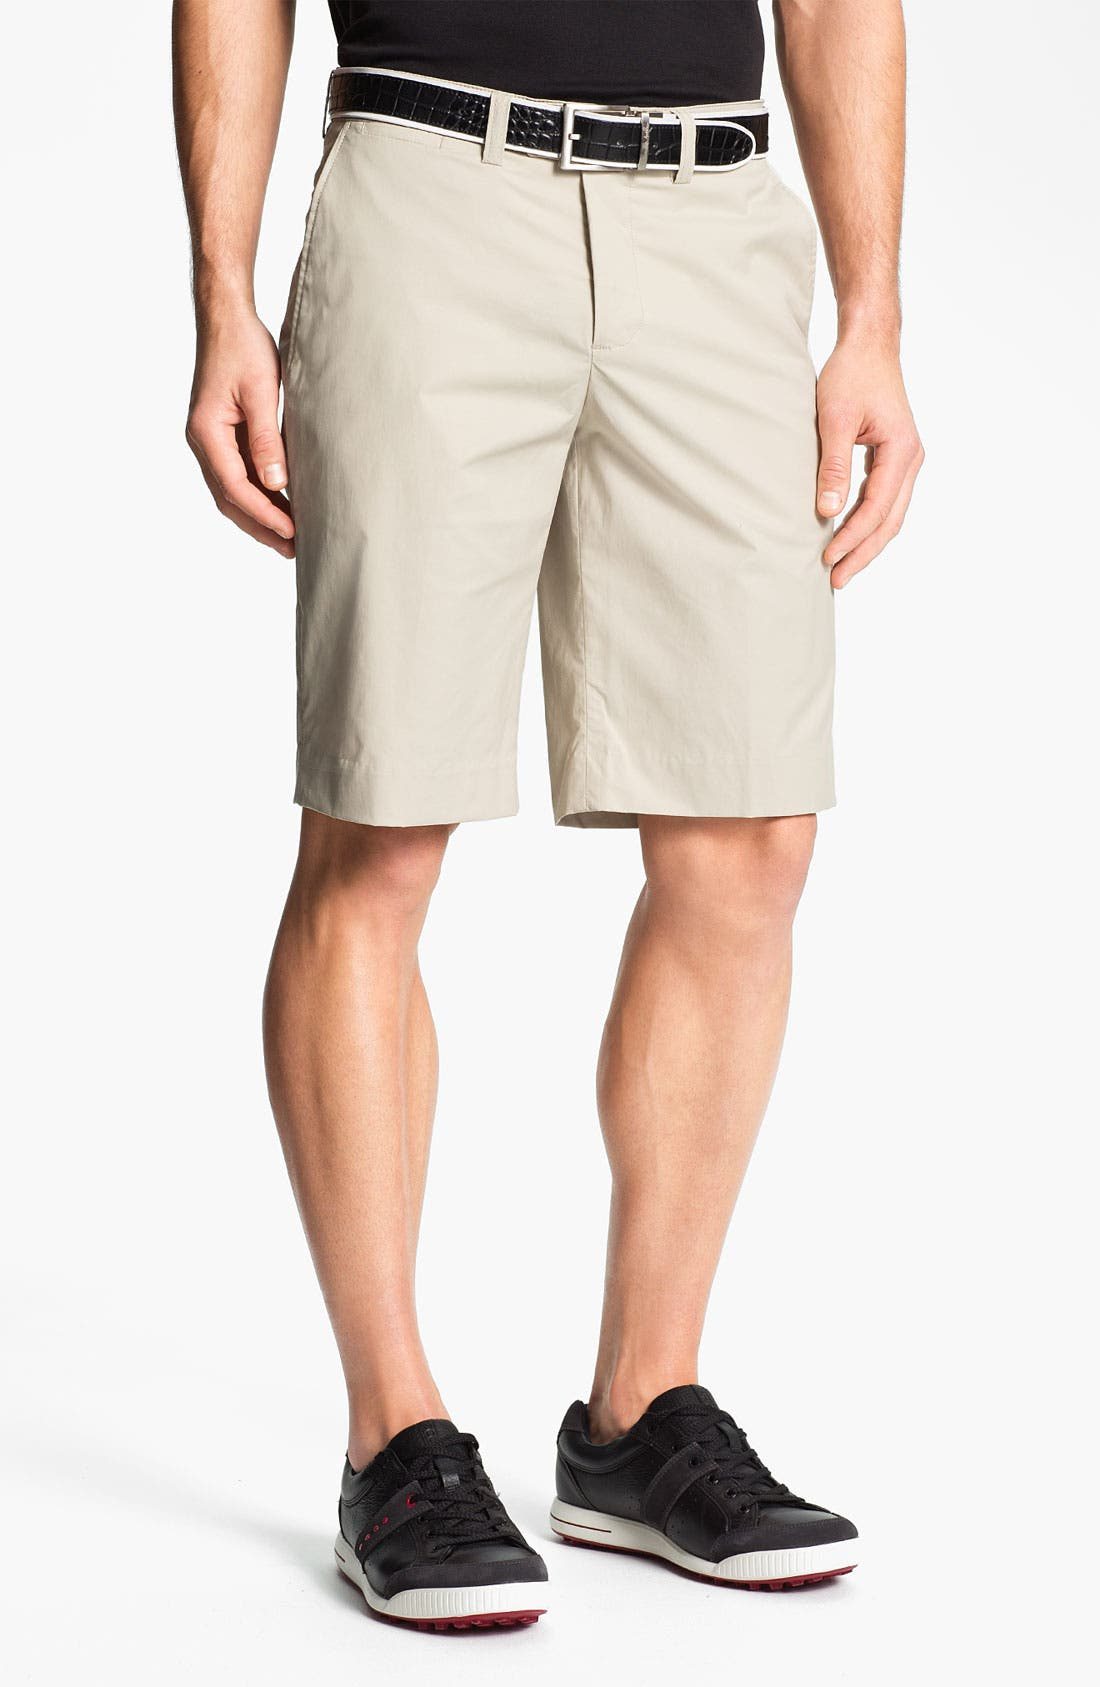 Alternate Image 1 Selected - Aquascutum Golf 'Mash' Golf Shorts (Online Only)